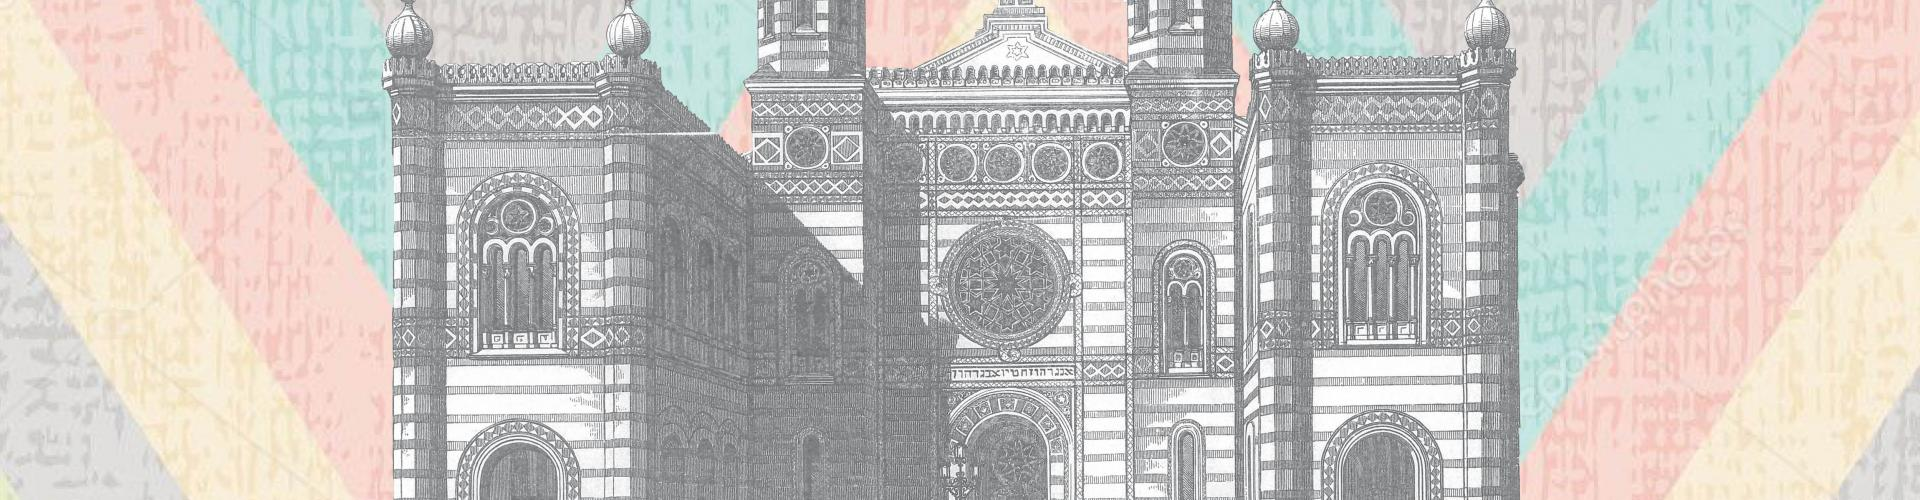 black and white illustration of an ornate synagogue facade on top of colorful chevron background